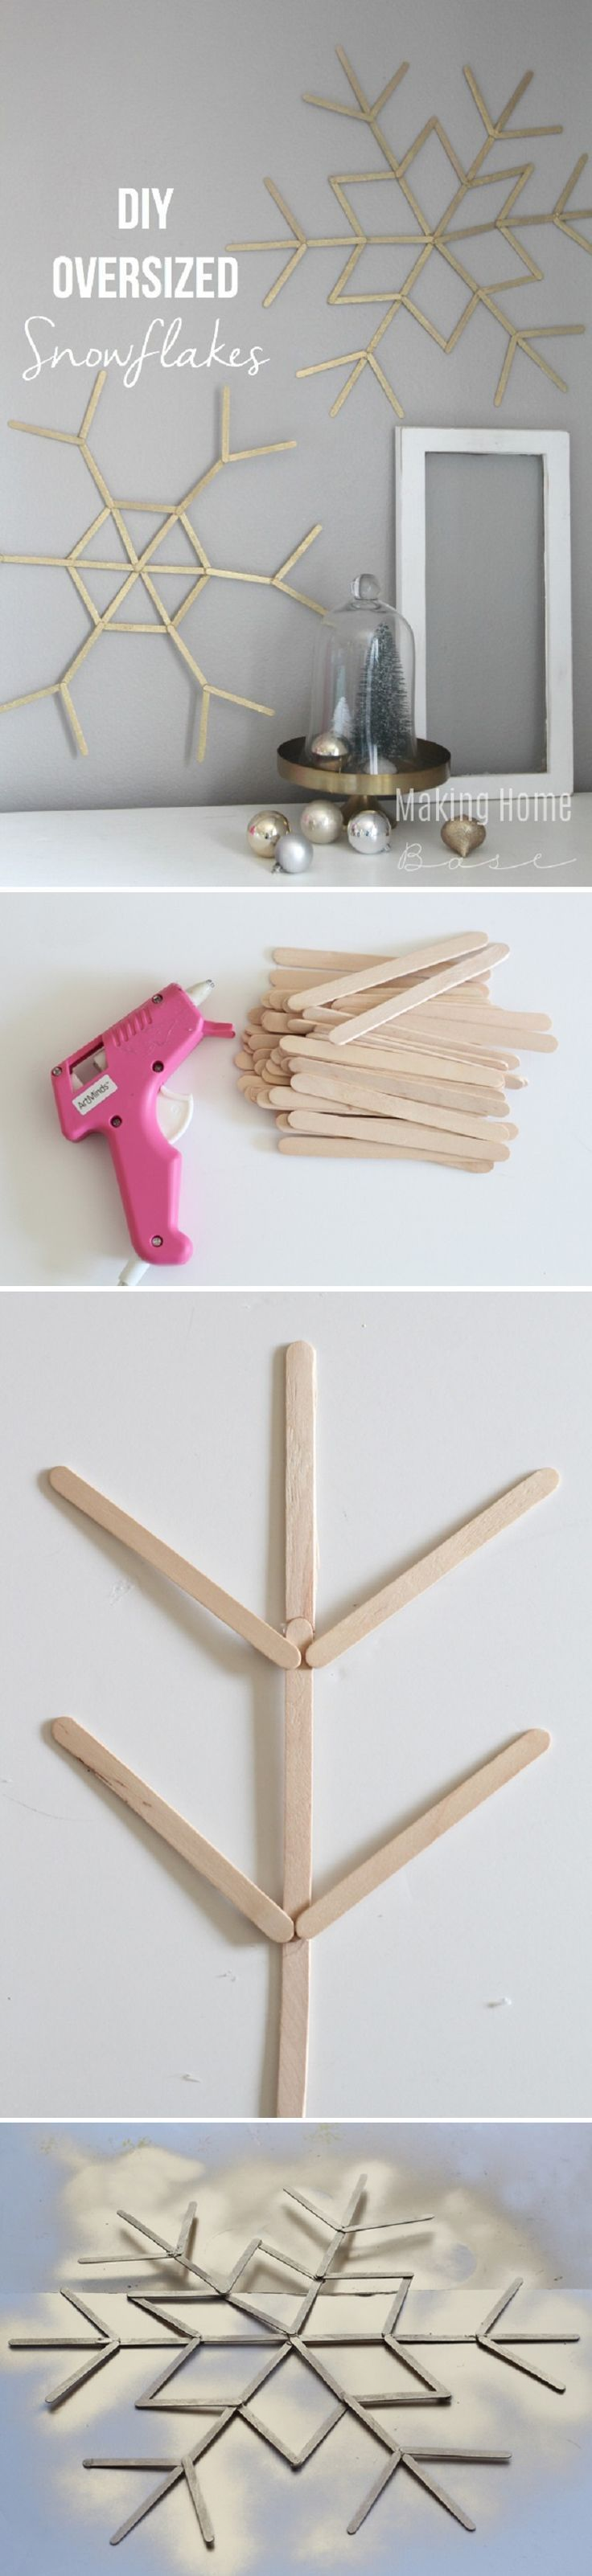 Popsicle Stick Schneeflocken   – Nellaino – Pinterest for Business Strategist – Pinterest Influencer & marketer – Lifestyle photograp